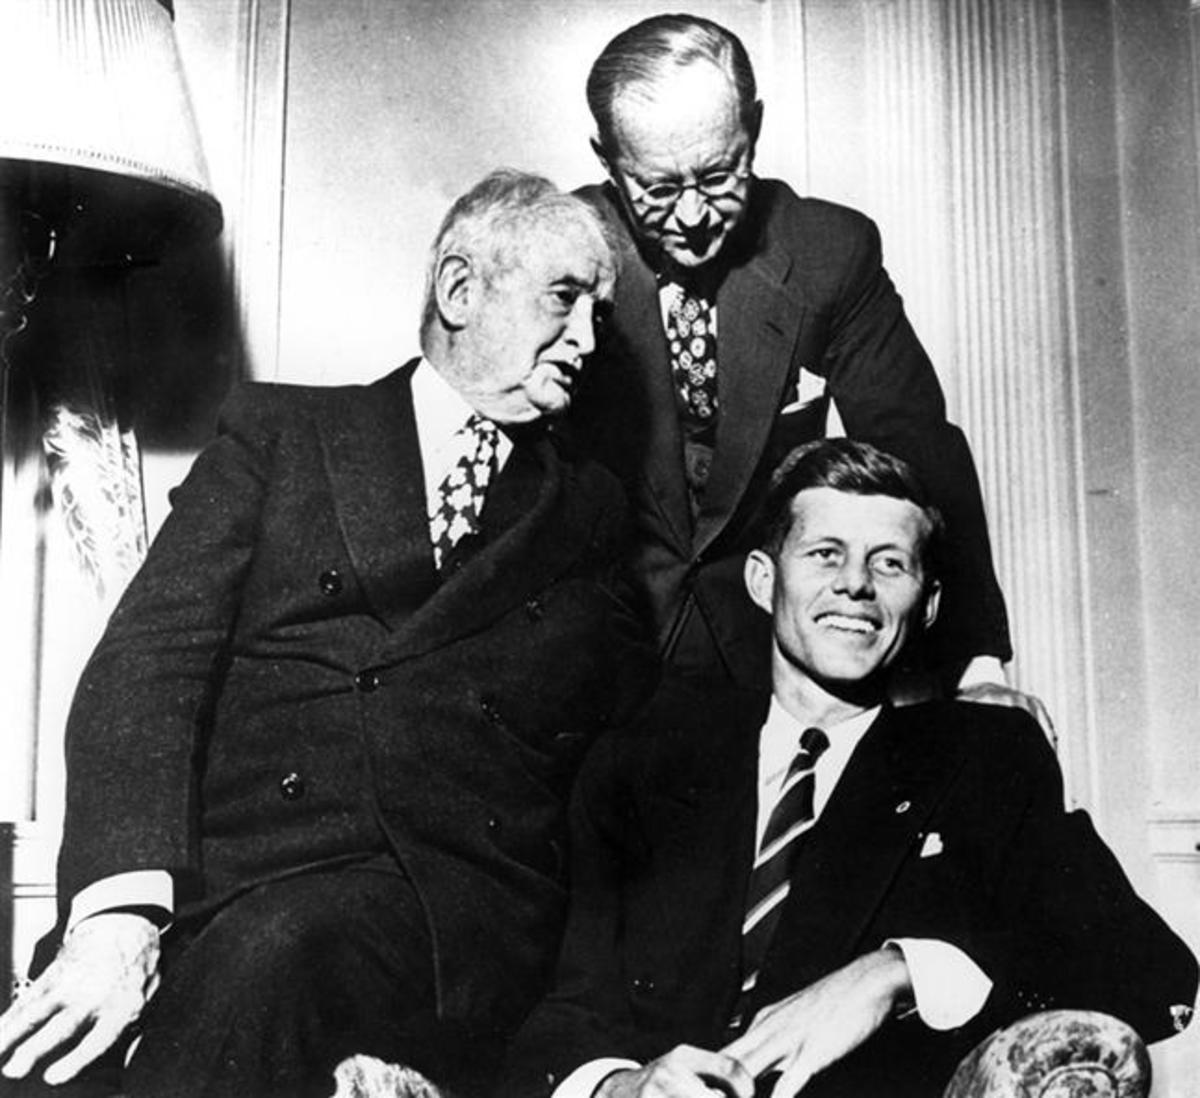 """3 Generations of Kennedys: John Francis """"Honey Fitz"""" Fitzgerald (left), his son-in-law Joe Kennedy (standing) and his grandson John Fitzgerald Kennedy (seated) photo courtesy of historyguy.com"""